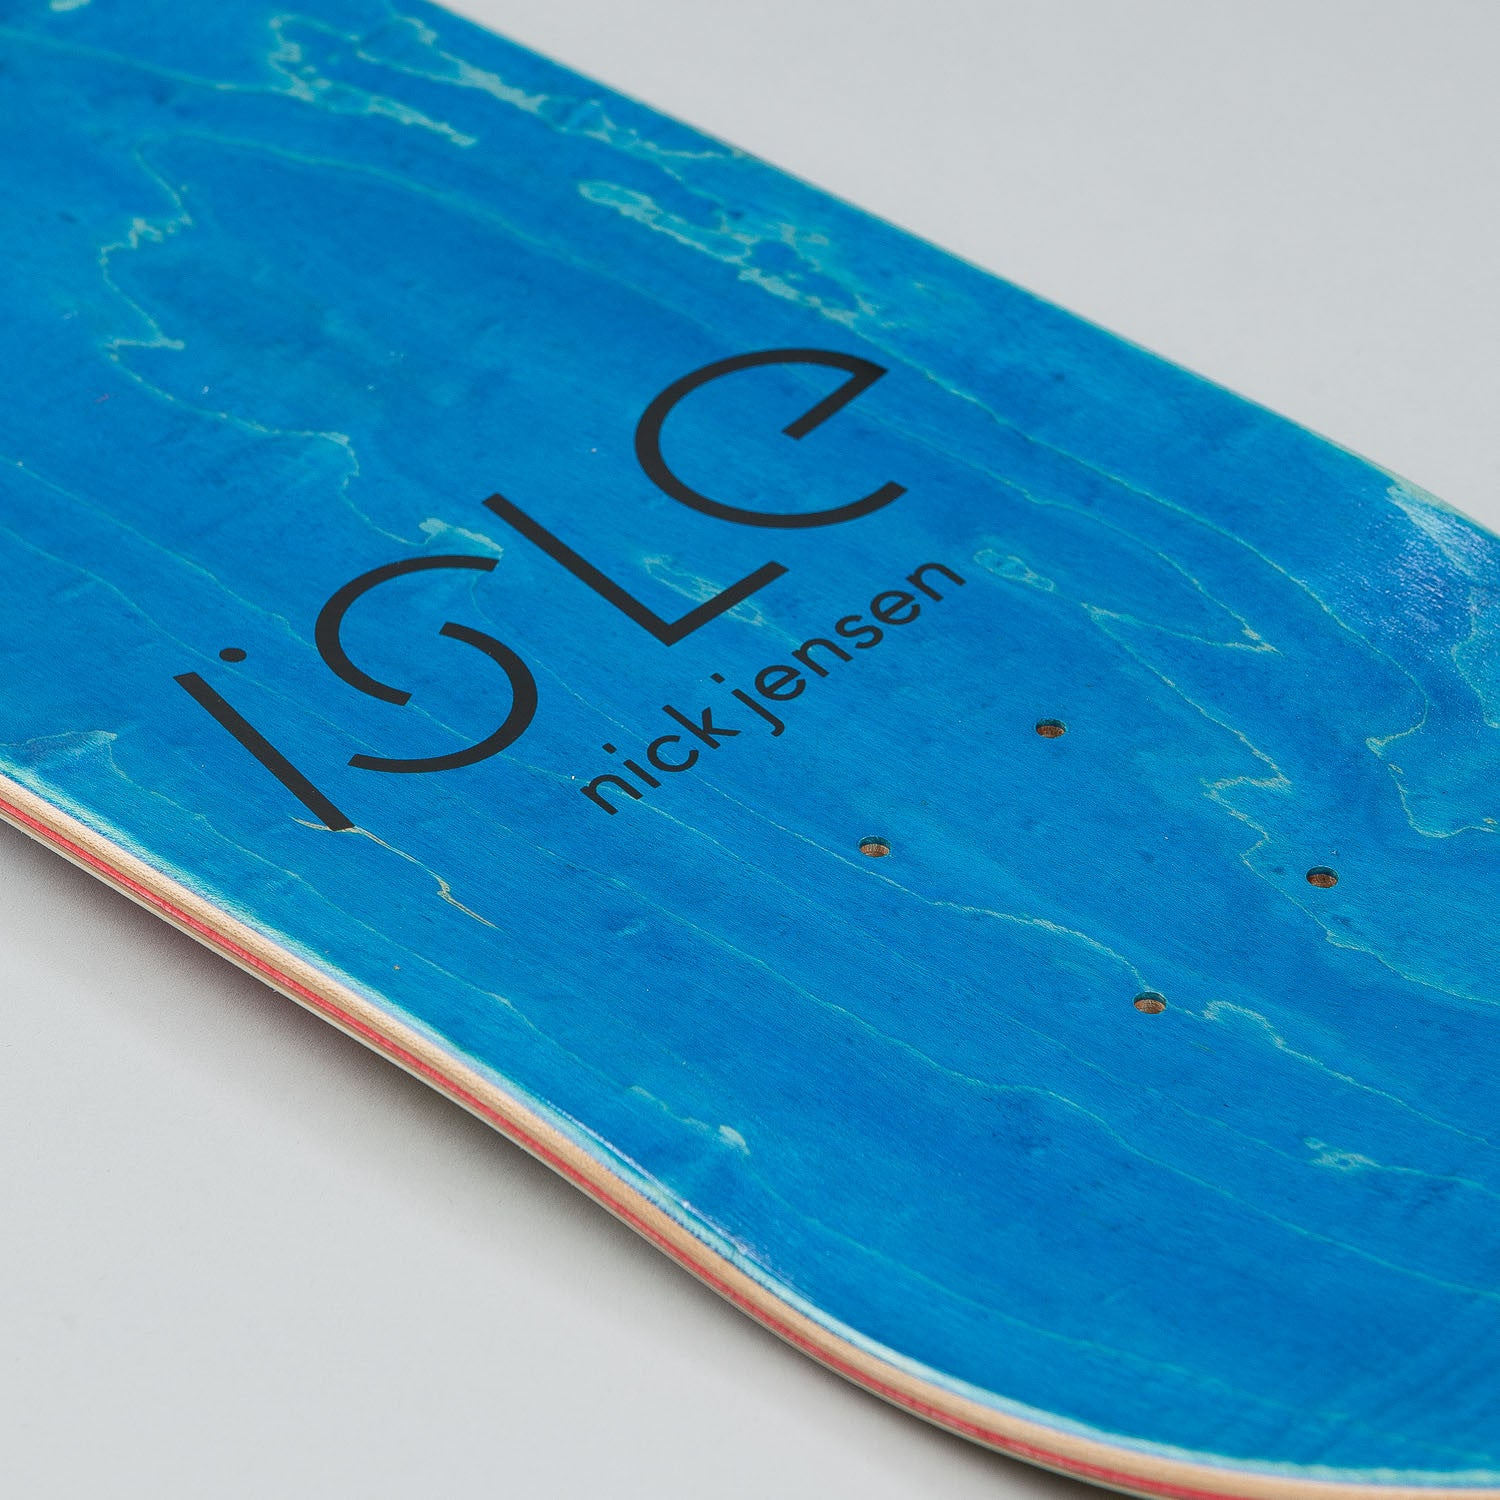 Isle Paint & Pigment Series Deck - Nick Jensen 8.5""